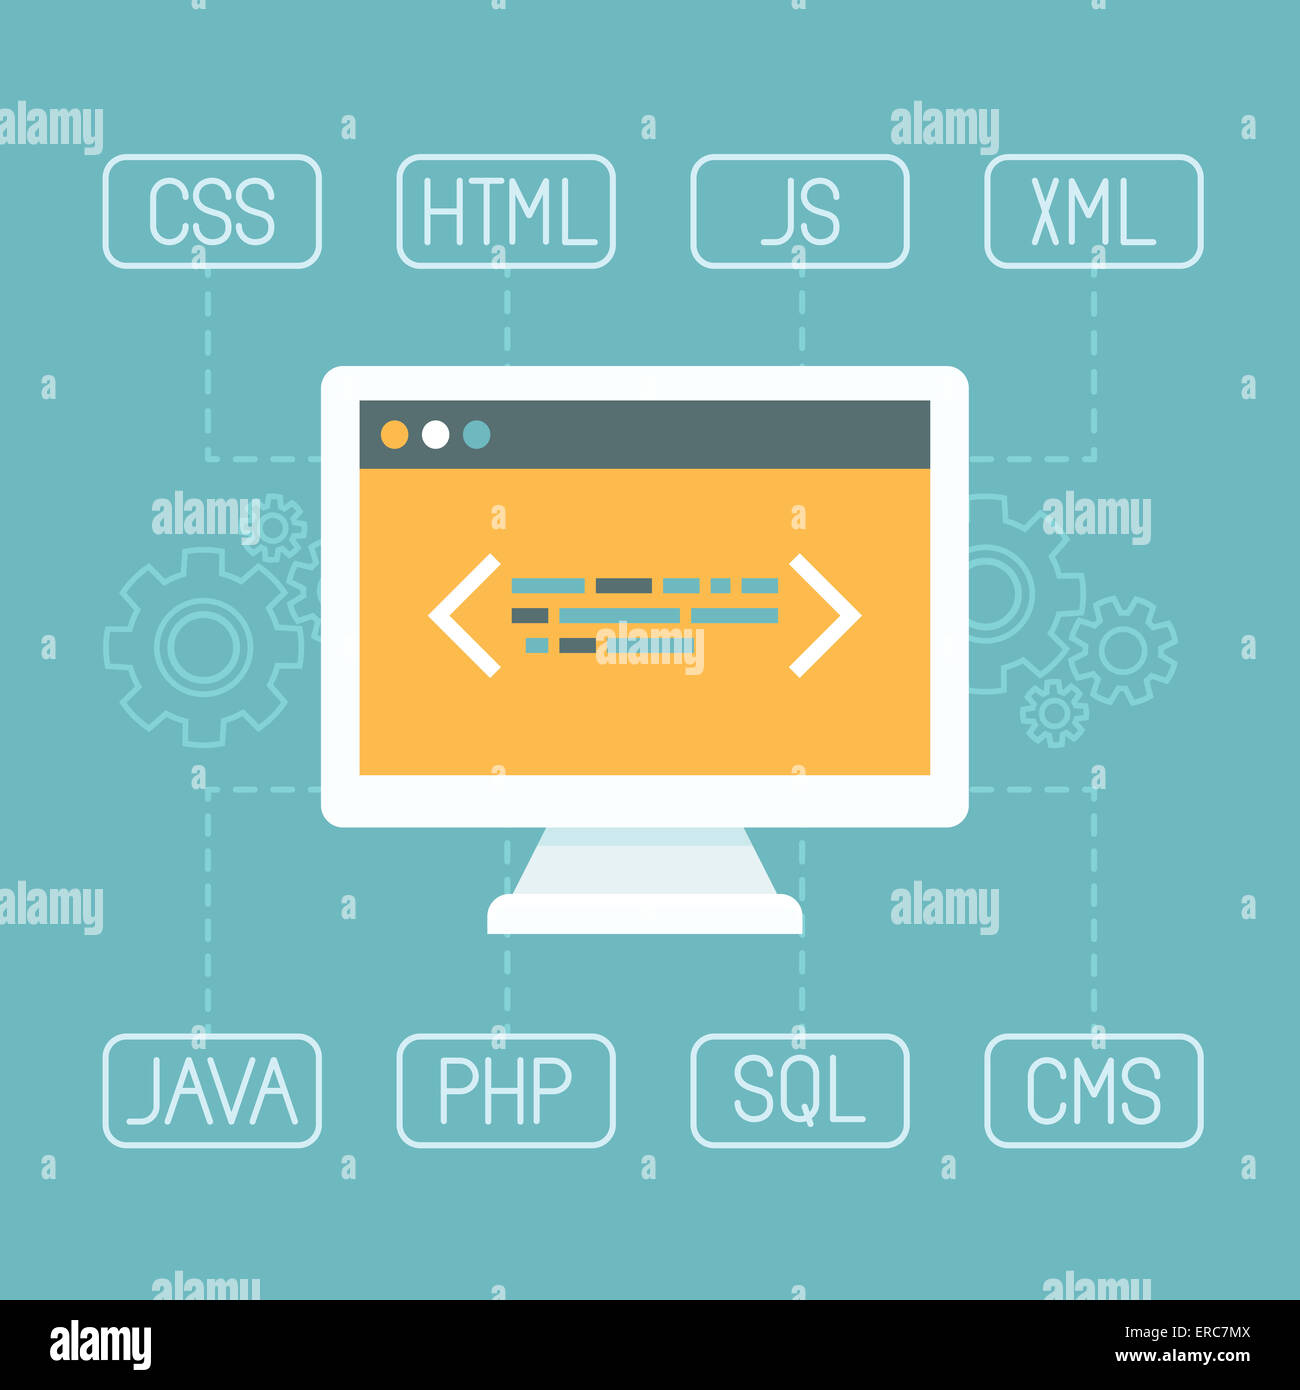 Web development concept in flat style - programming and coding concept - internet tecgnologies - Stock Image